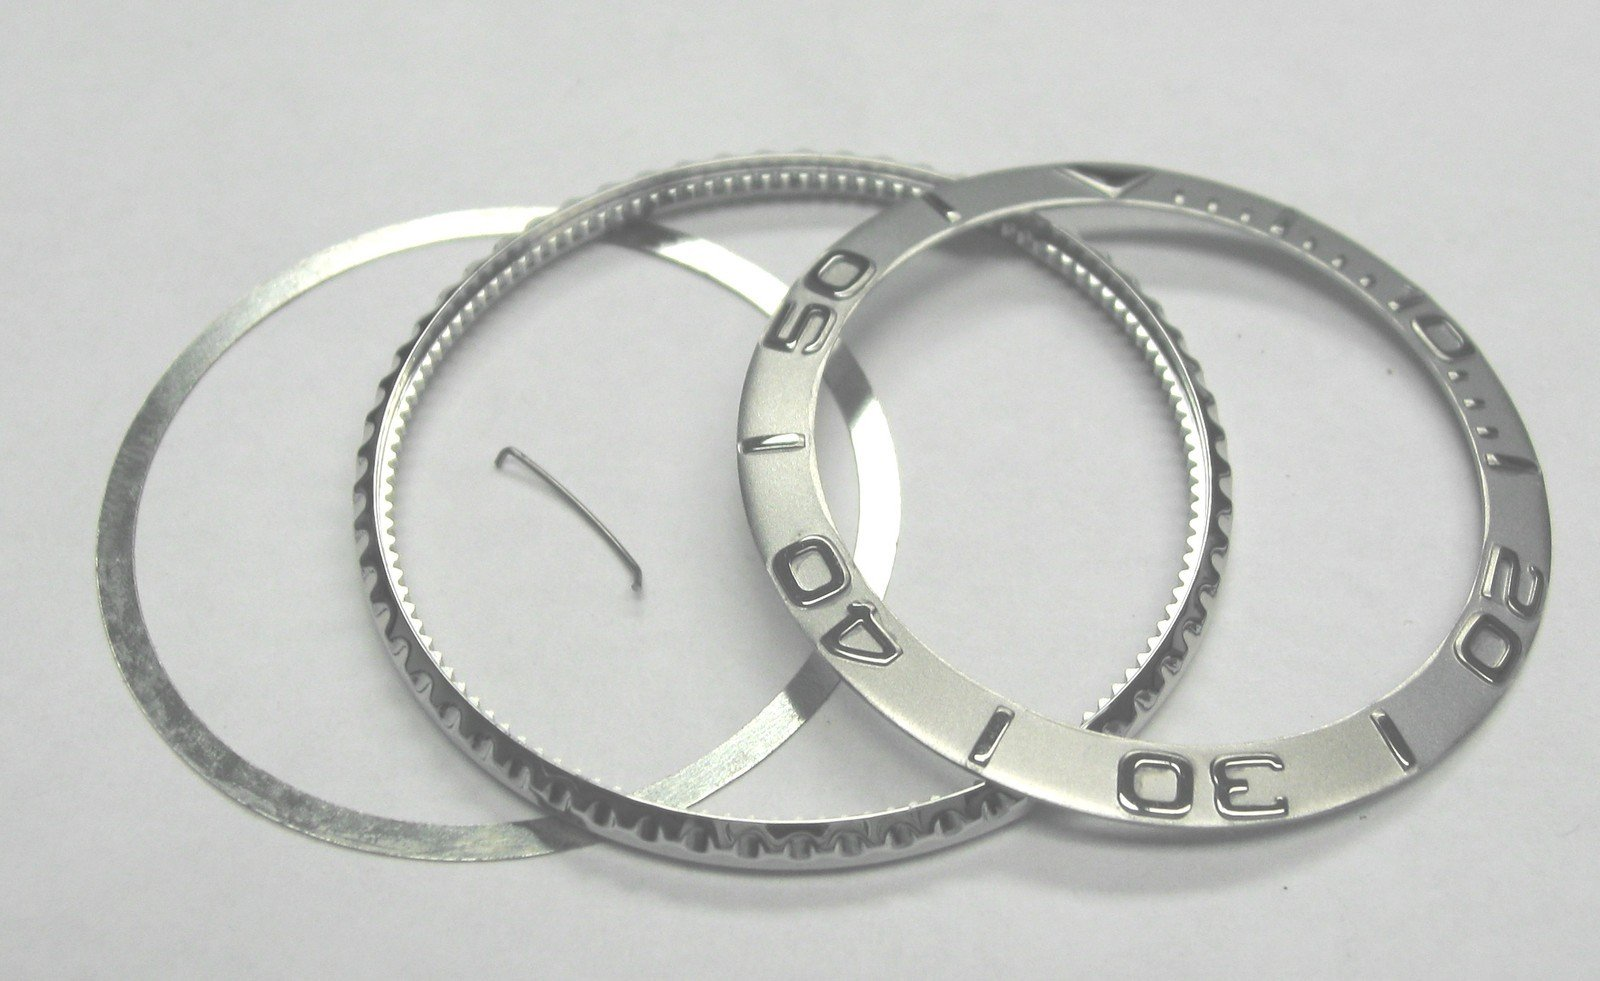 Bezel Insert Complete for Yatchmaster 16800, 16608, 16610, 16613 SS